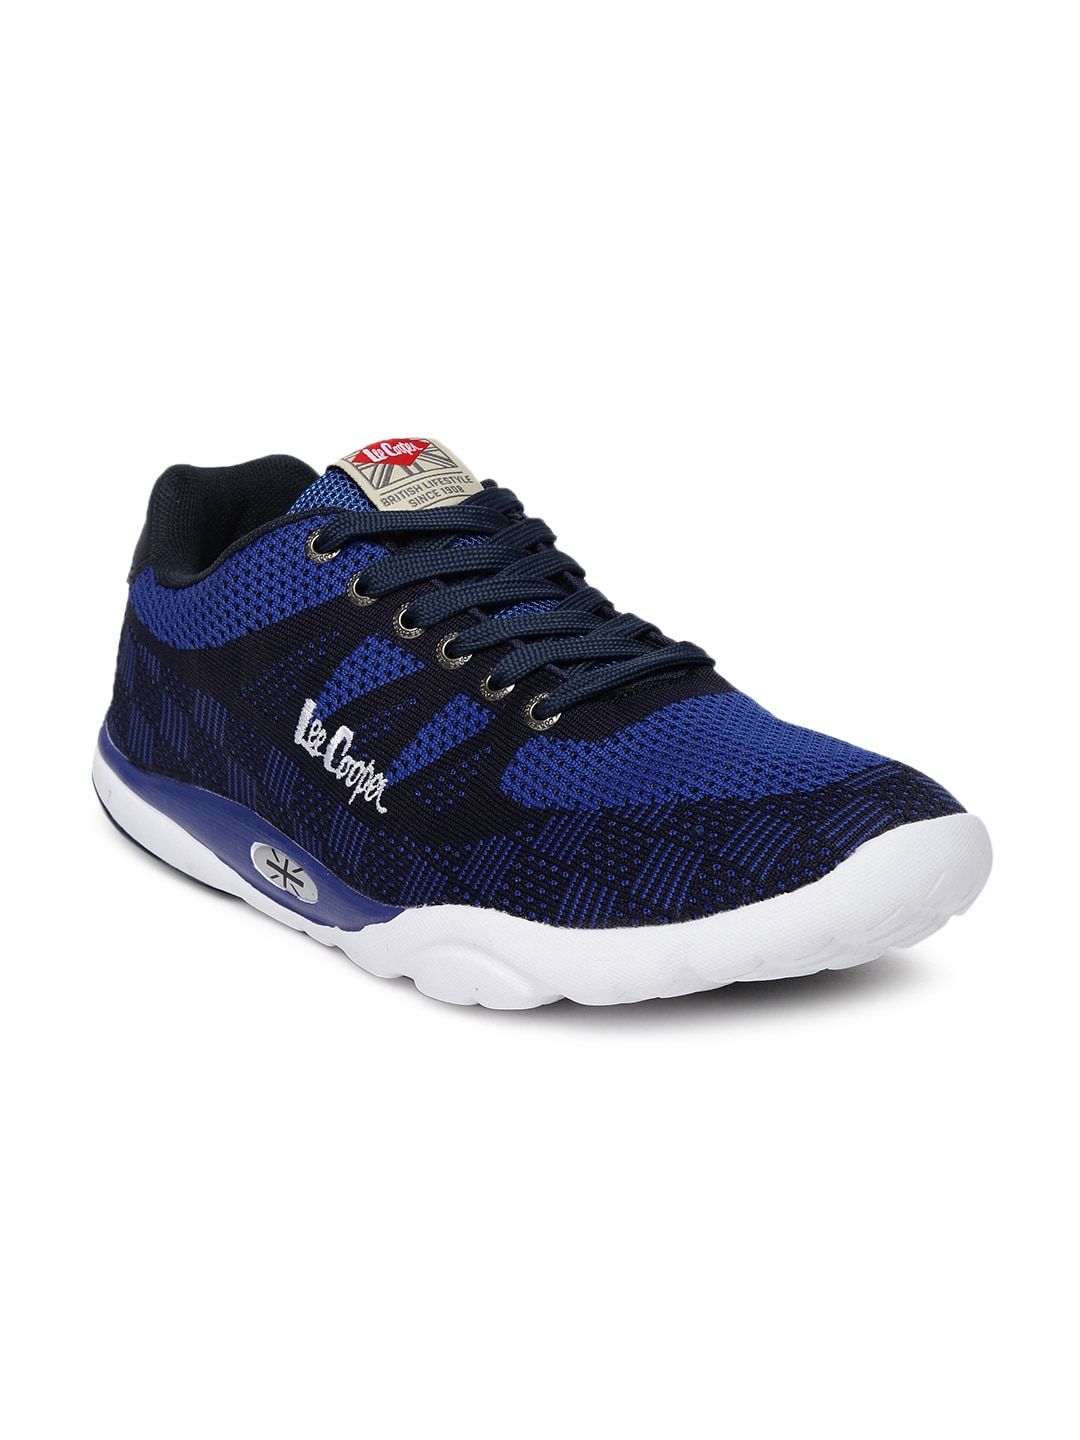 aae5e1597bfb10 Lee Cooper Shoes - Shop for Lee Cooper Shoes Online